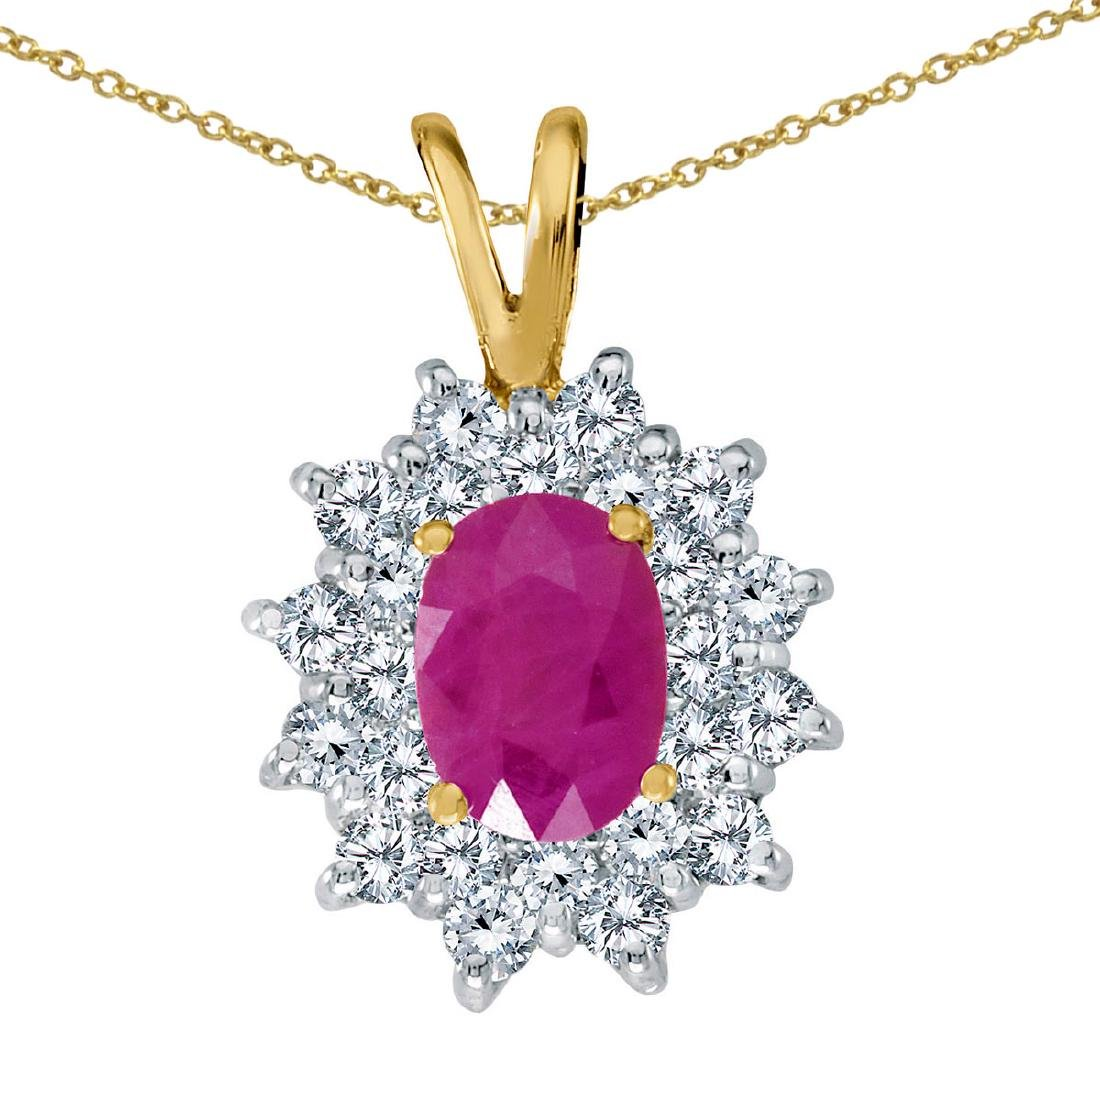 Certified 14k Yellow Gold Ruby Oval Pendant with Diamon